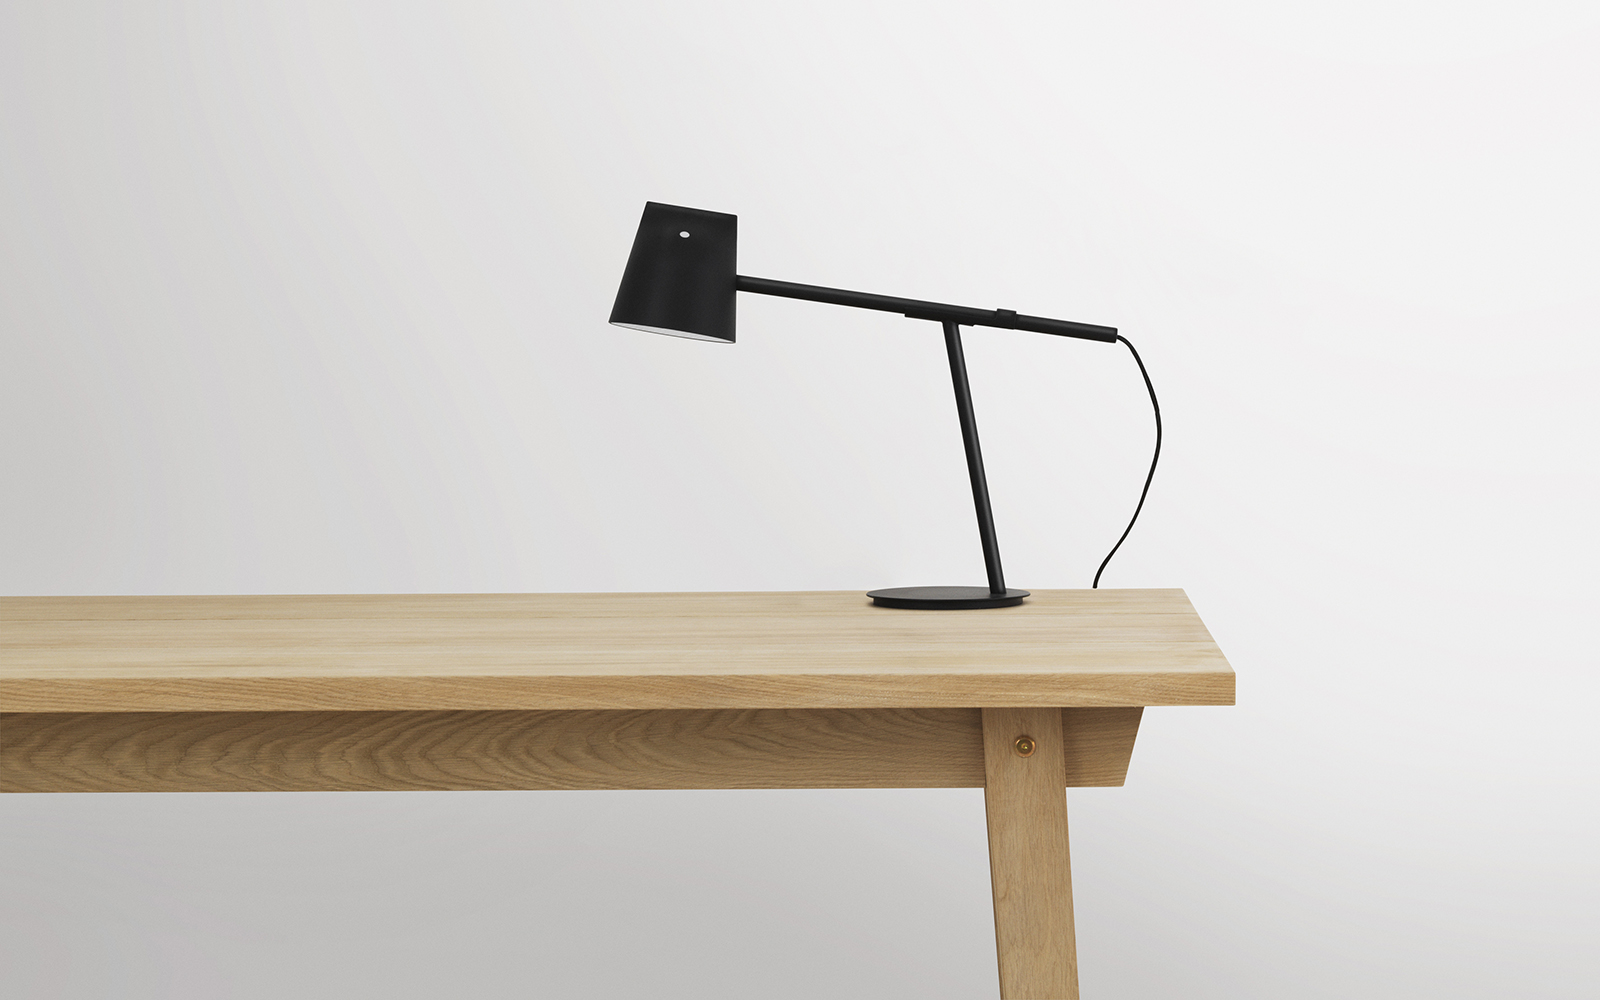 Table lamp design classic - The Momento Led Table Lamp Is The Designer Duo S Idea Of A New And Simplified Version Of The Classic Office Lamp The Typical Technical Office Lamp